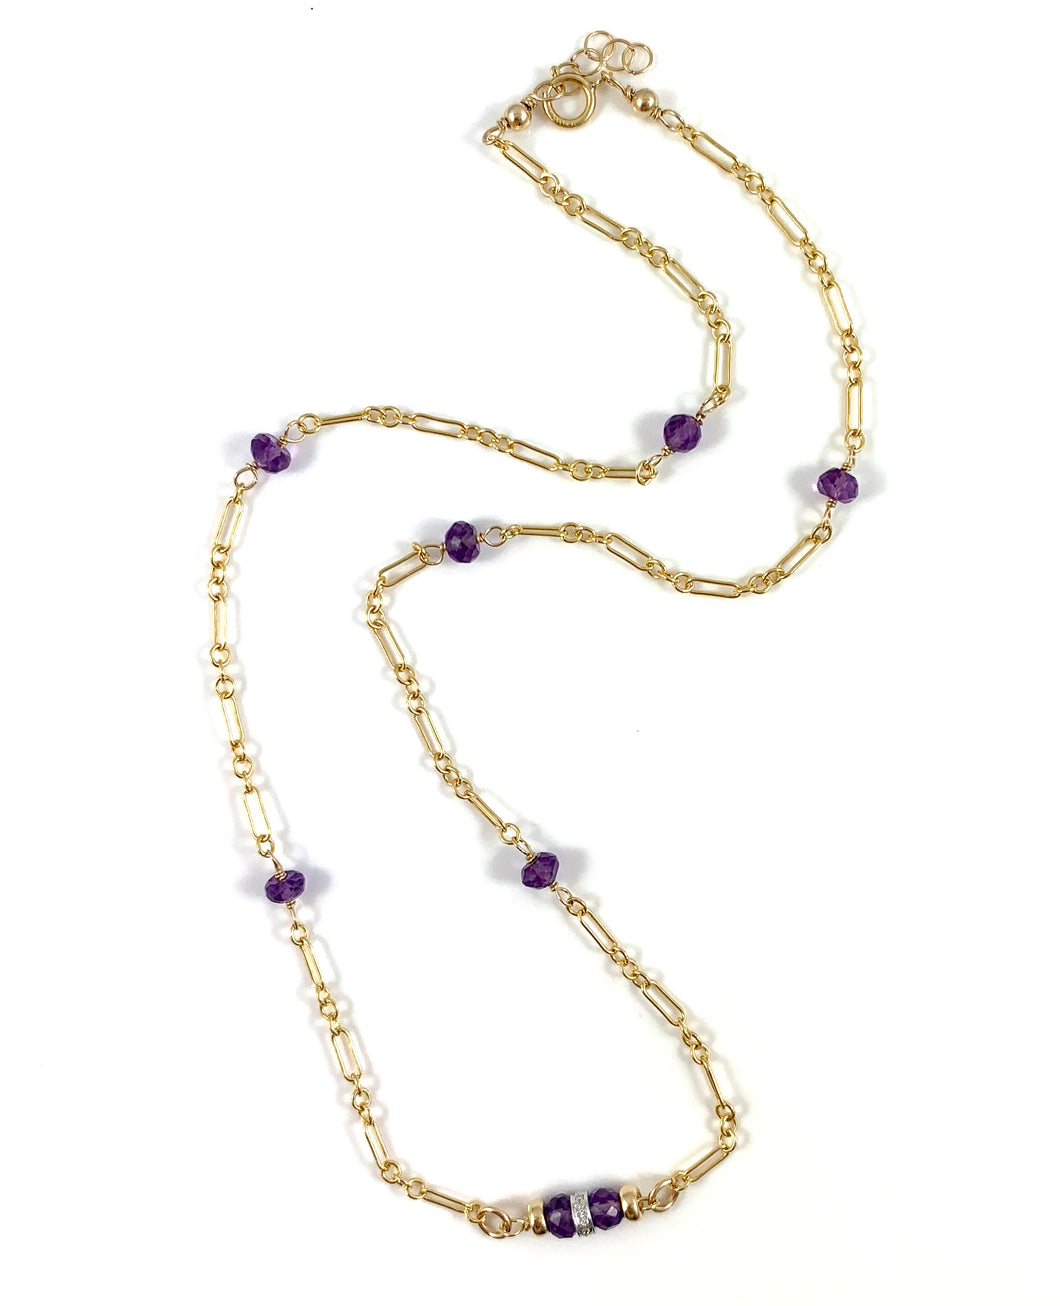 Diamond Amethyst Gold Chain Necklace 15